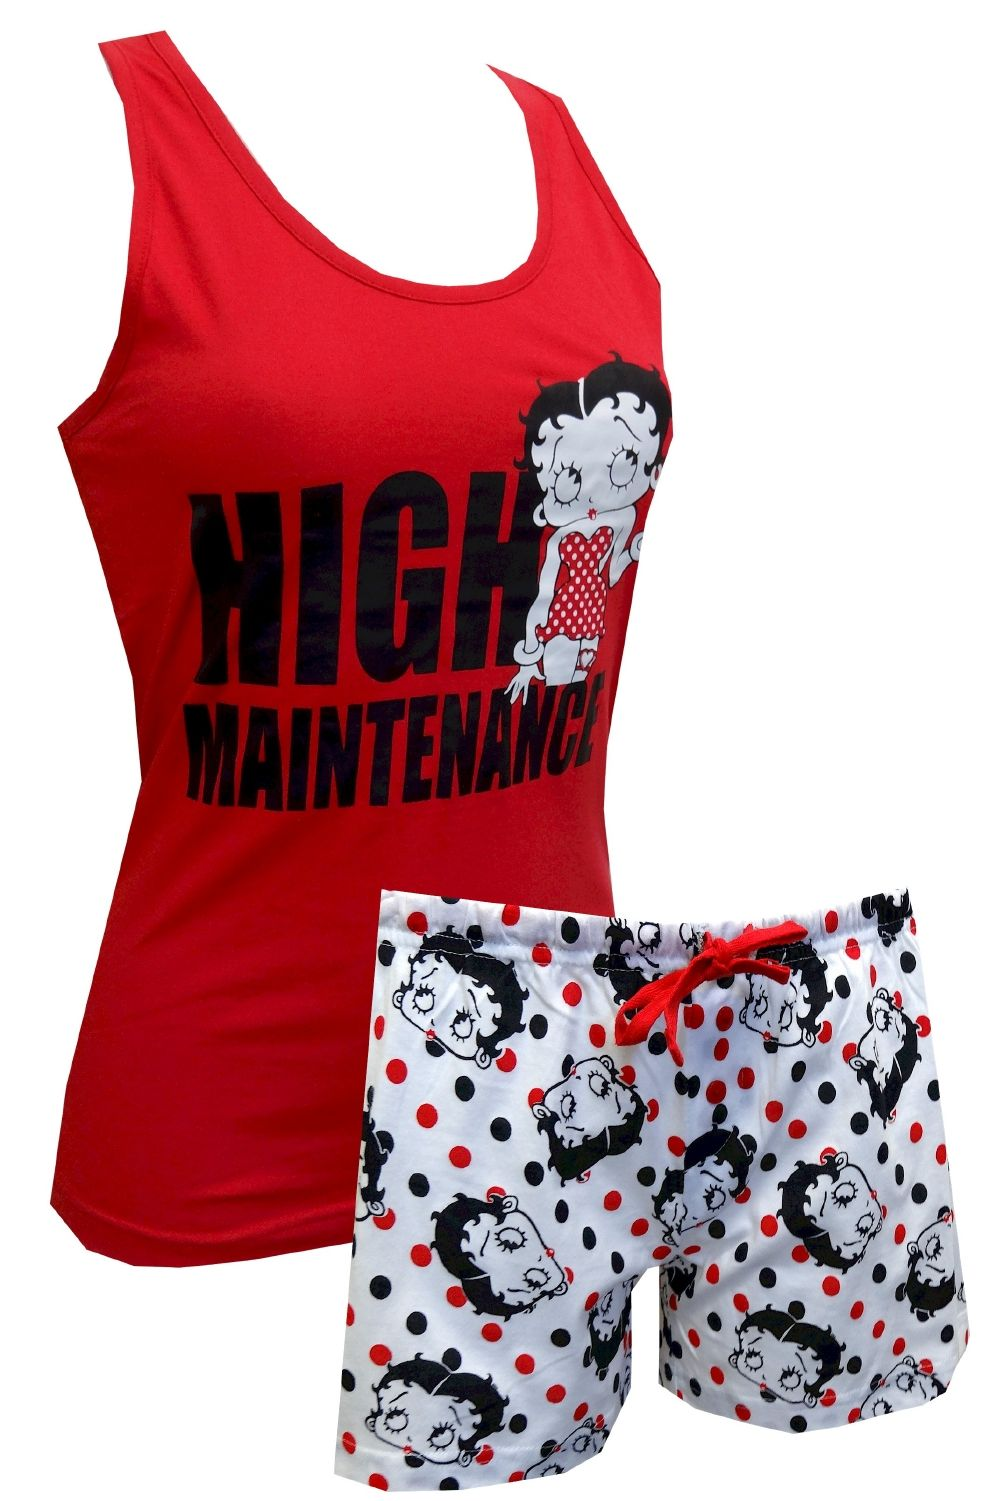 Betty Boop High Maintenance Cami/Short Set | ❤ BNM ❤ | Pinterest ...